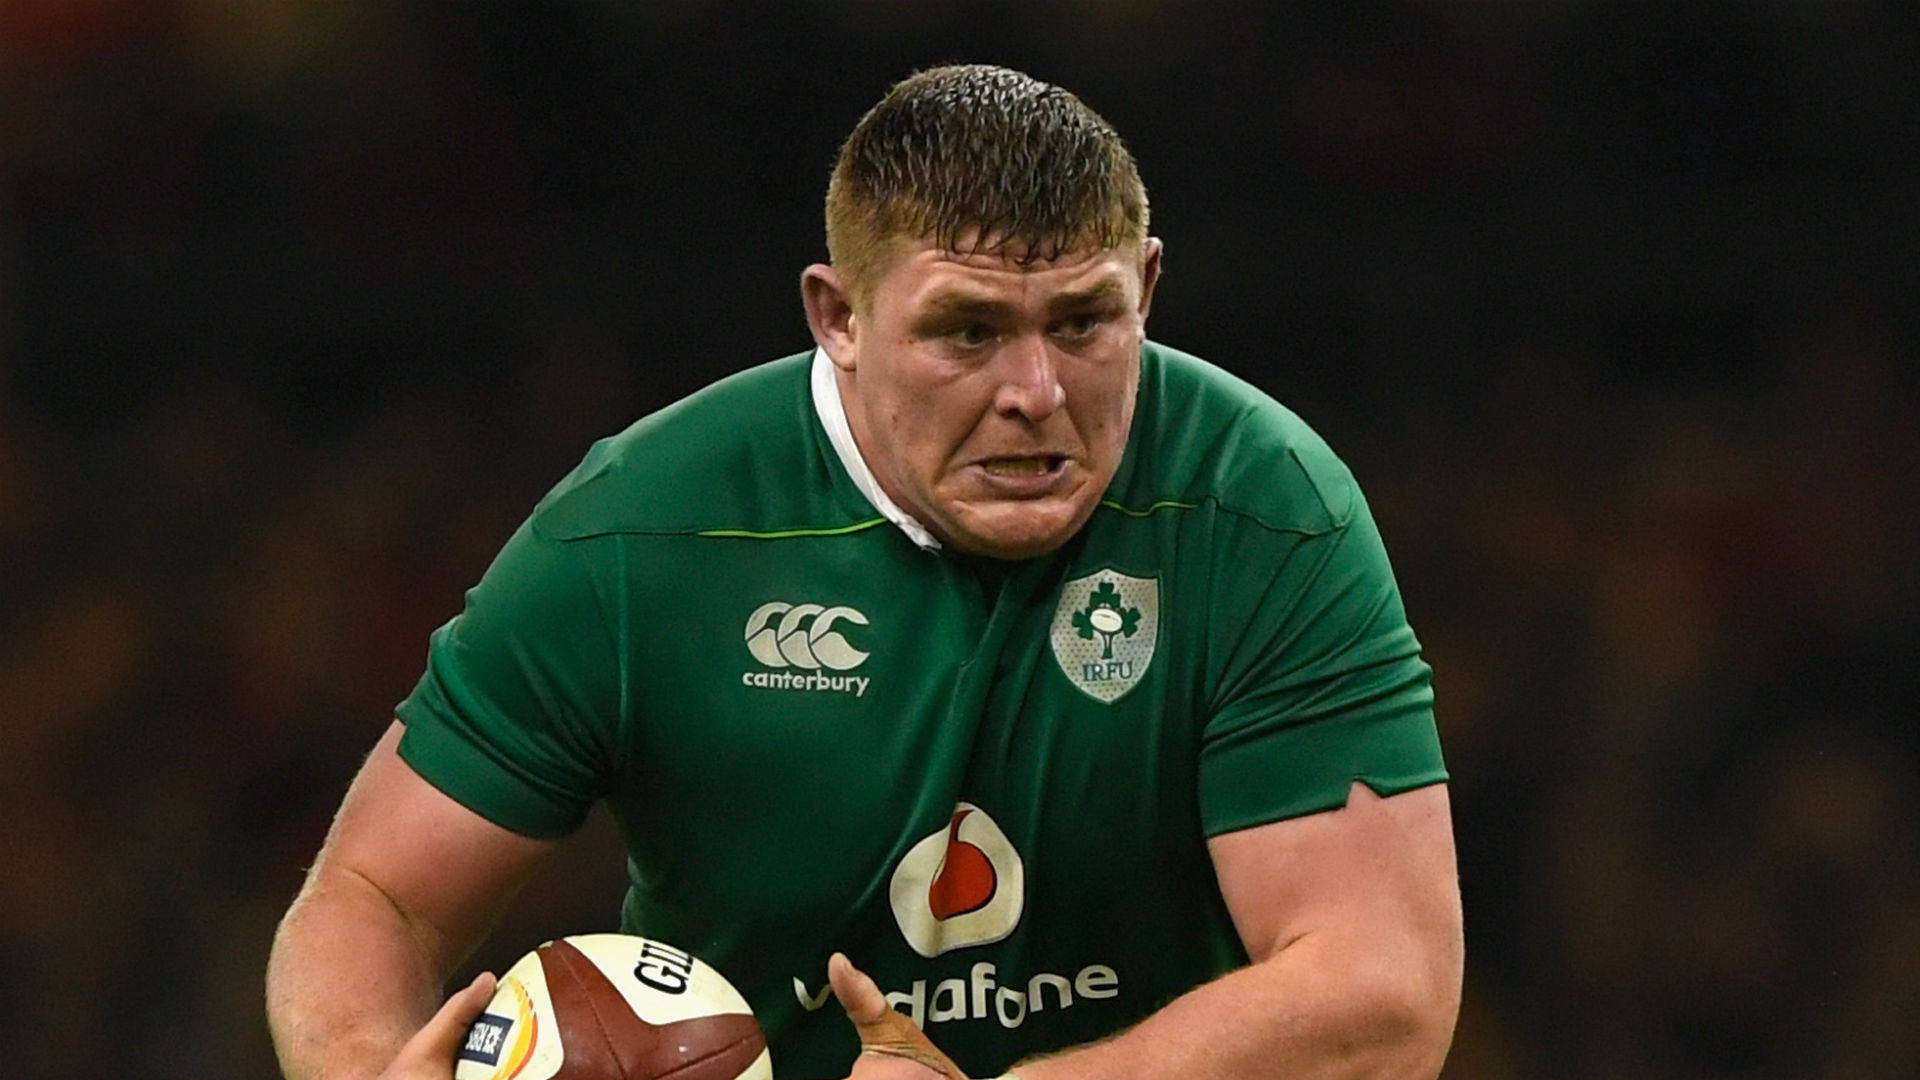 British and Irish Lion Tadhg Furlong will continue to ply his trade in his homeland for at least another season.